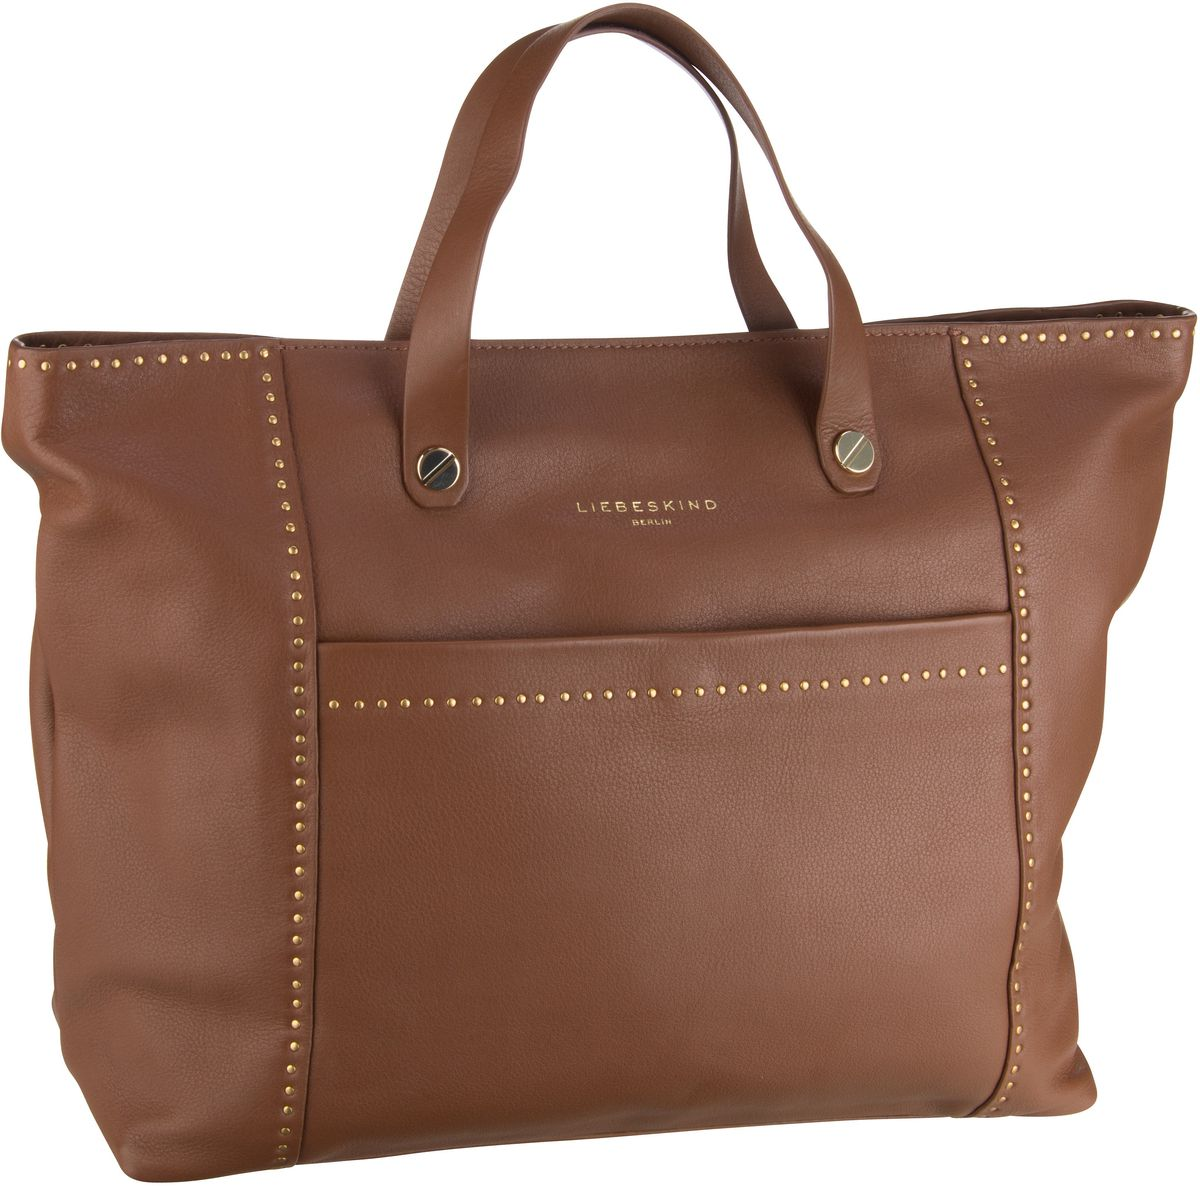 Liebeskind Berlin Shopper Stud Love Tote L Bourbon